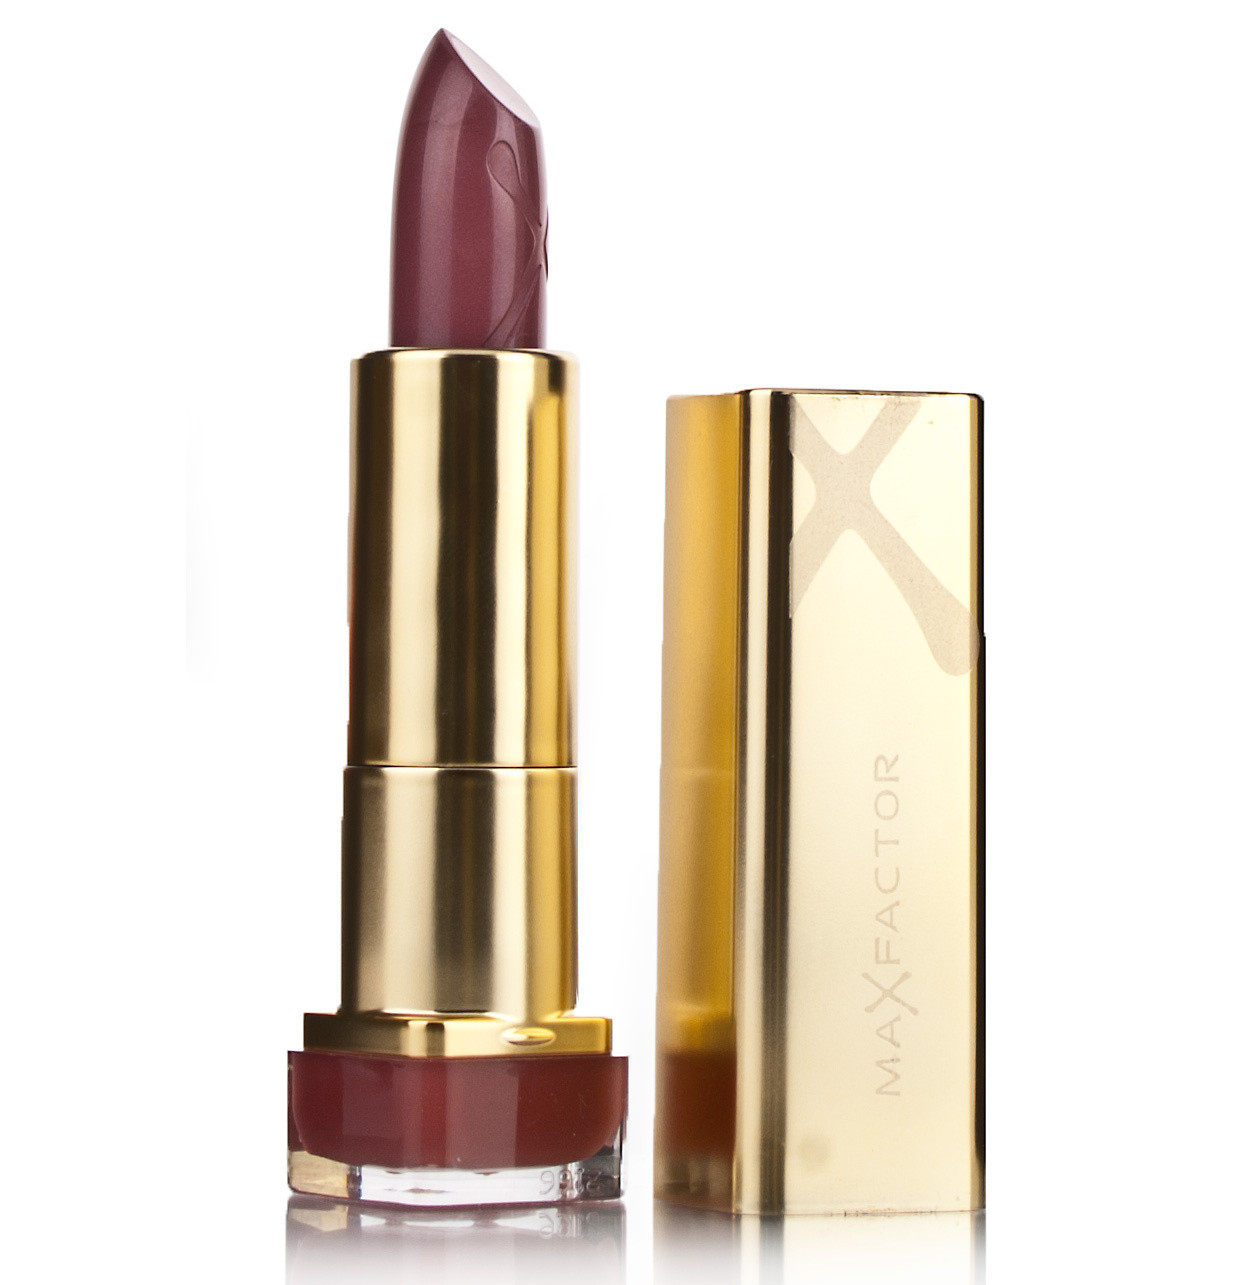 Max Factor Lasting Colour Lipstick Sunbronze